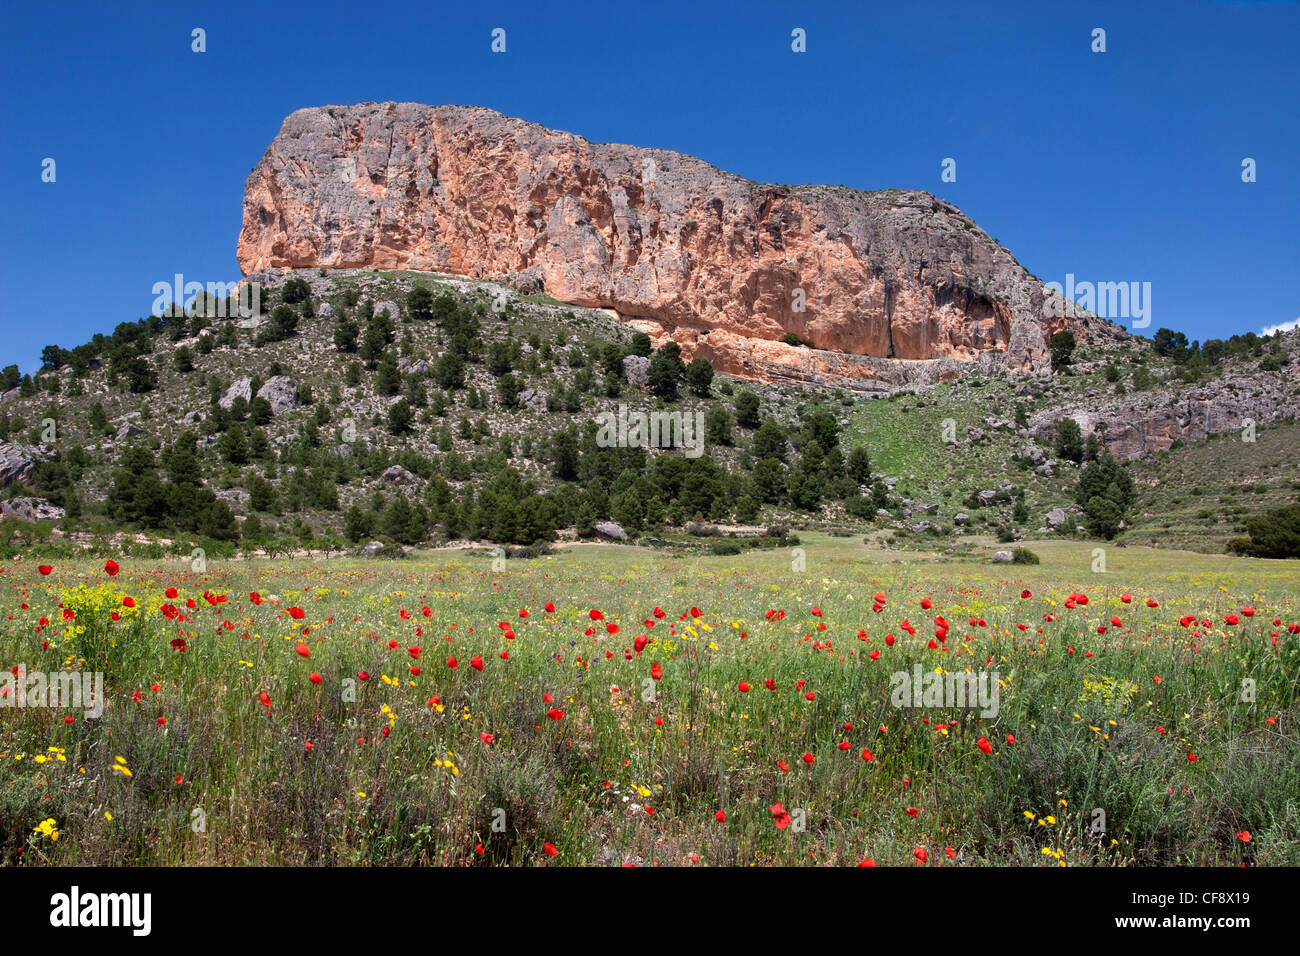 Ruby Rock, a geological formation in Penarrubia. - Stock Image